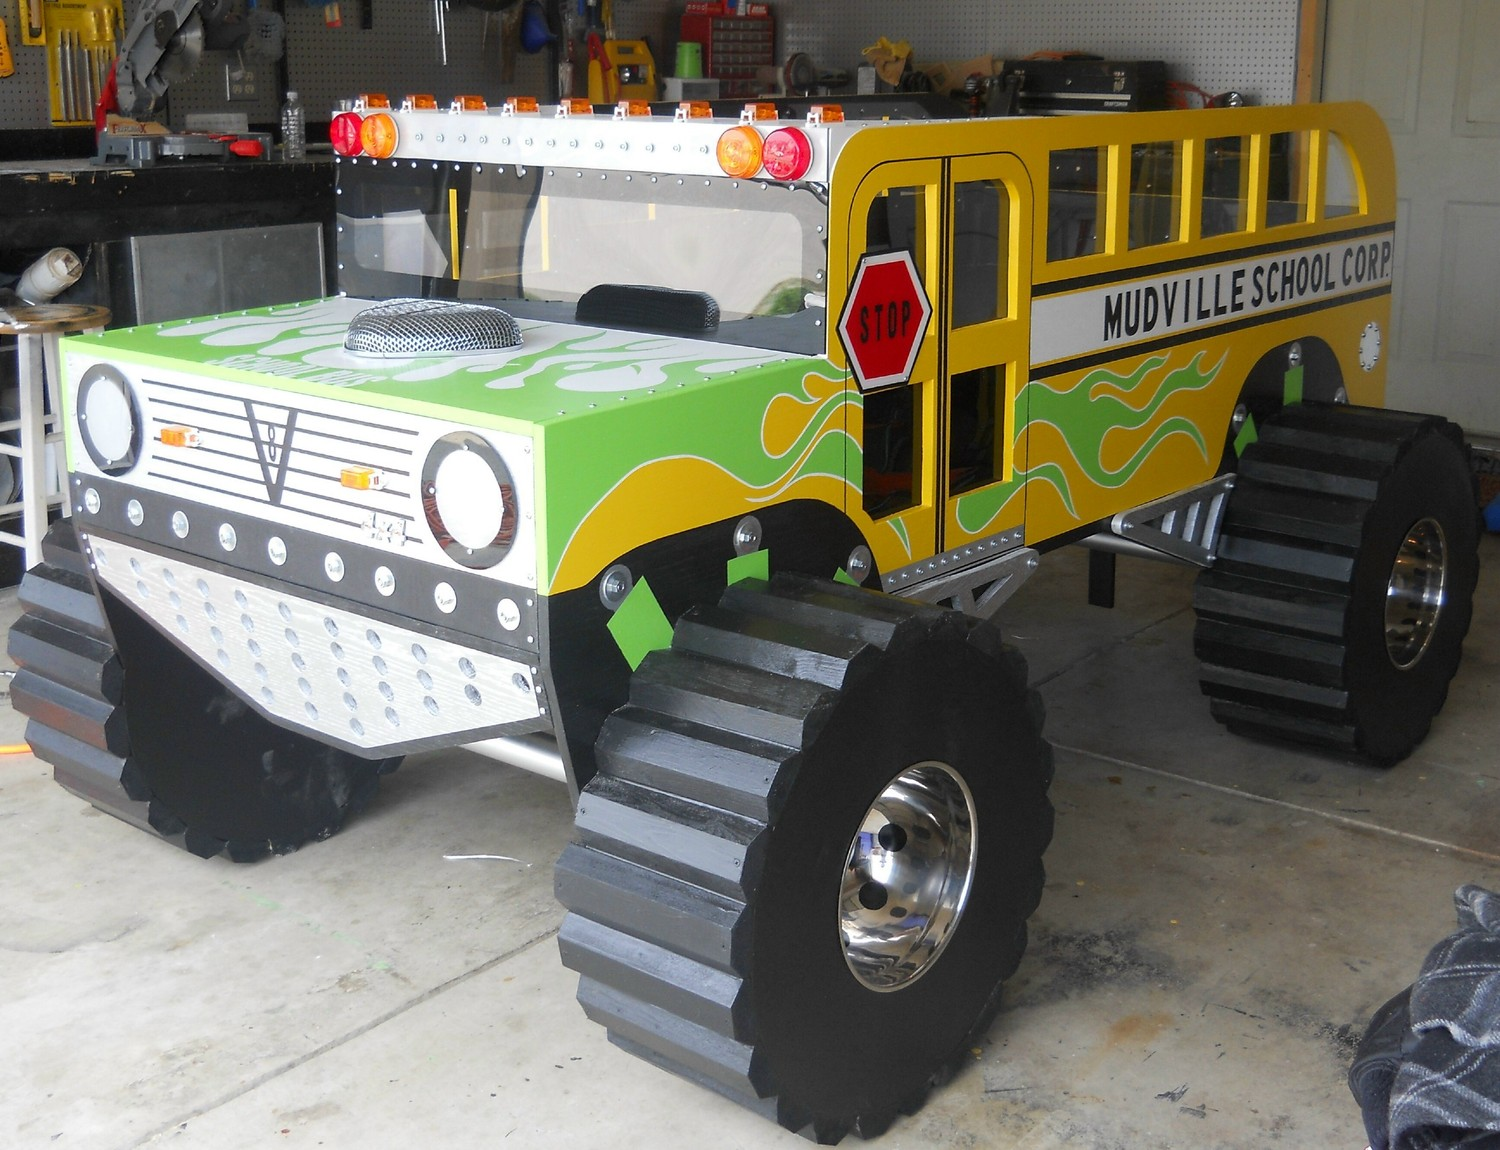 Truck beds for kids - 20 Amazing Beds For Kids